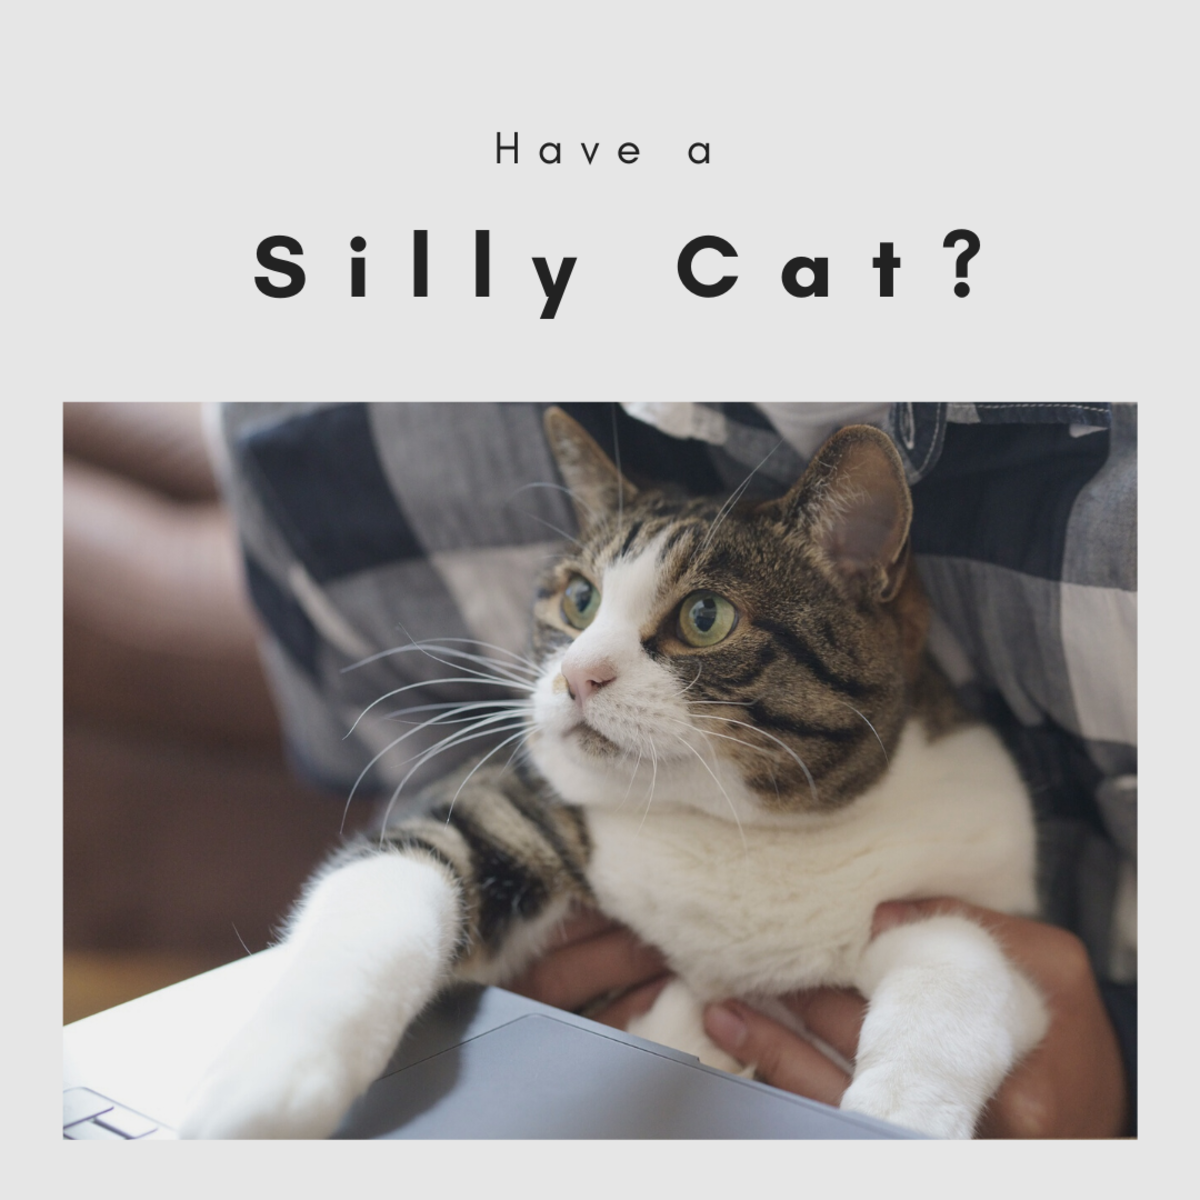 Funny cat names are just not suitable for all cats; sweet cats should have cute names, lazy cats should have plain names, but silly cats need funny names!